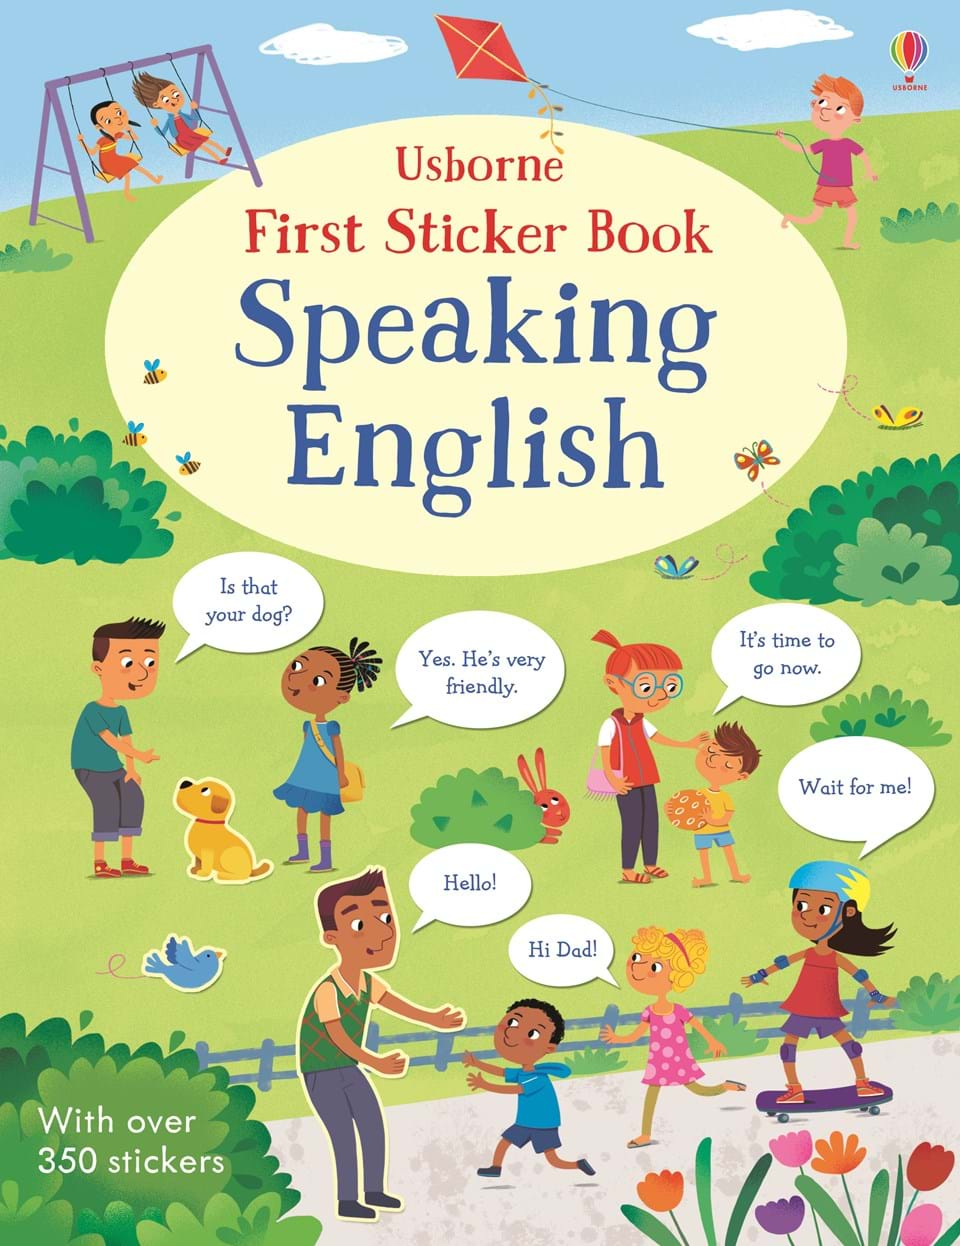 """English Book Cover Pictures : """"speaking english at usborne children s books"""